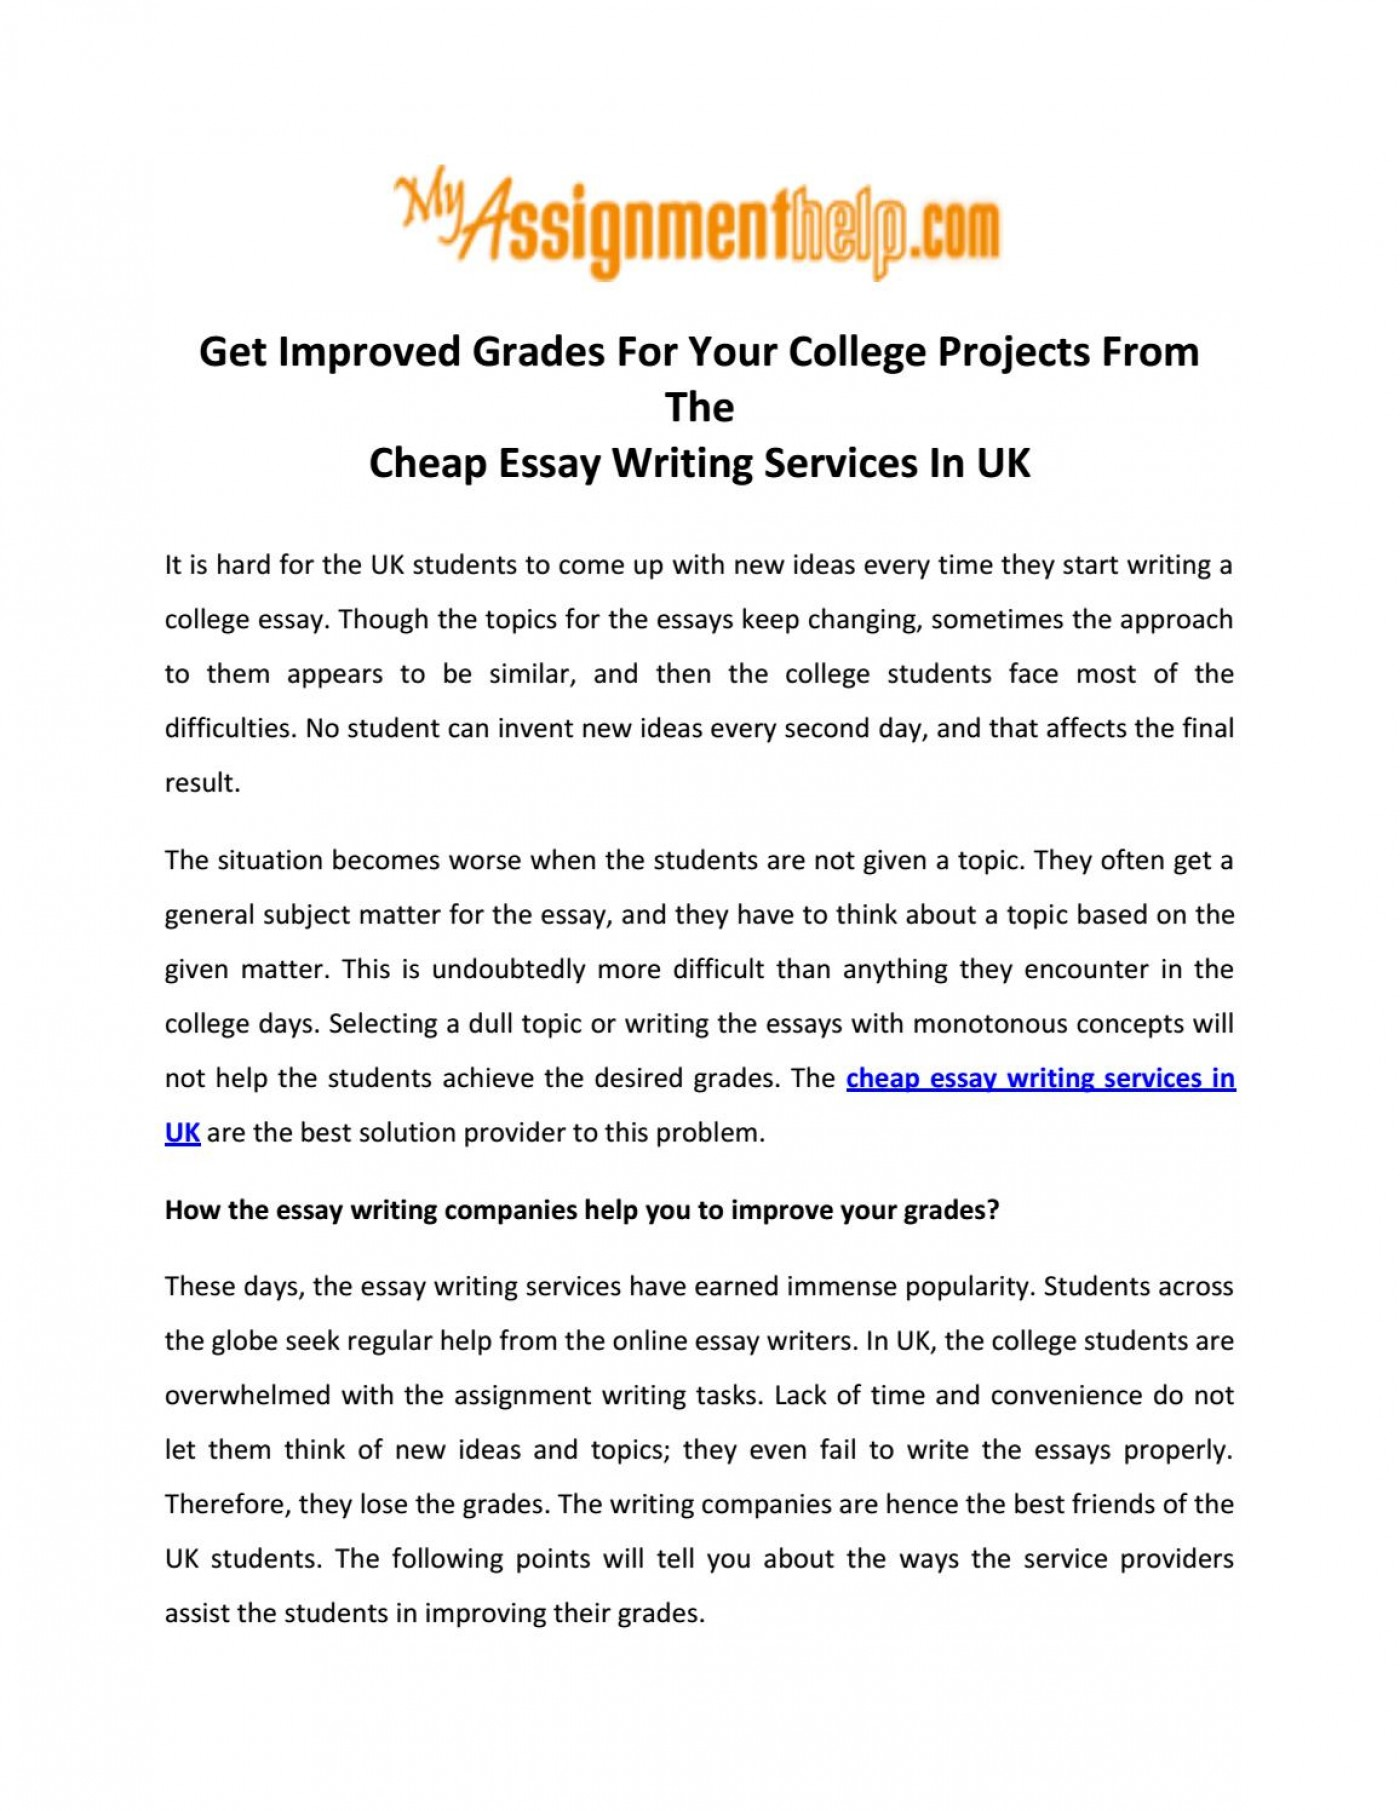 011 Page 1 Essay Example Cheap Writing Unusual Service Review Services Uk Australia 1400